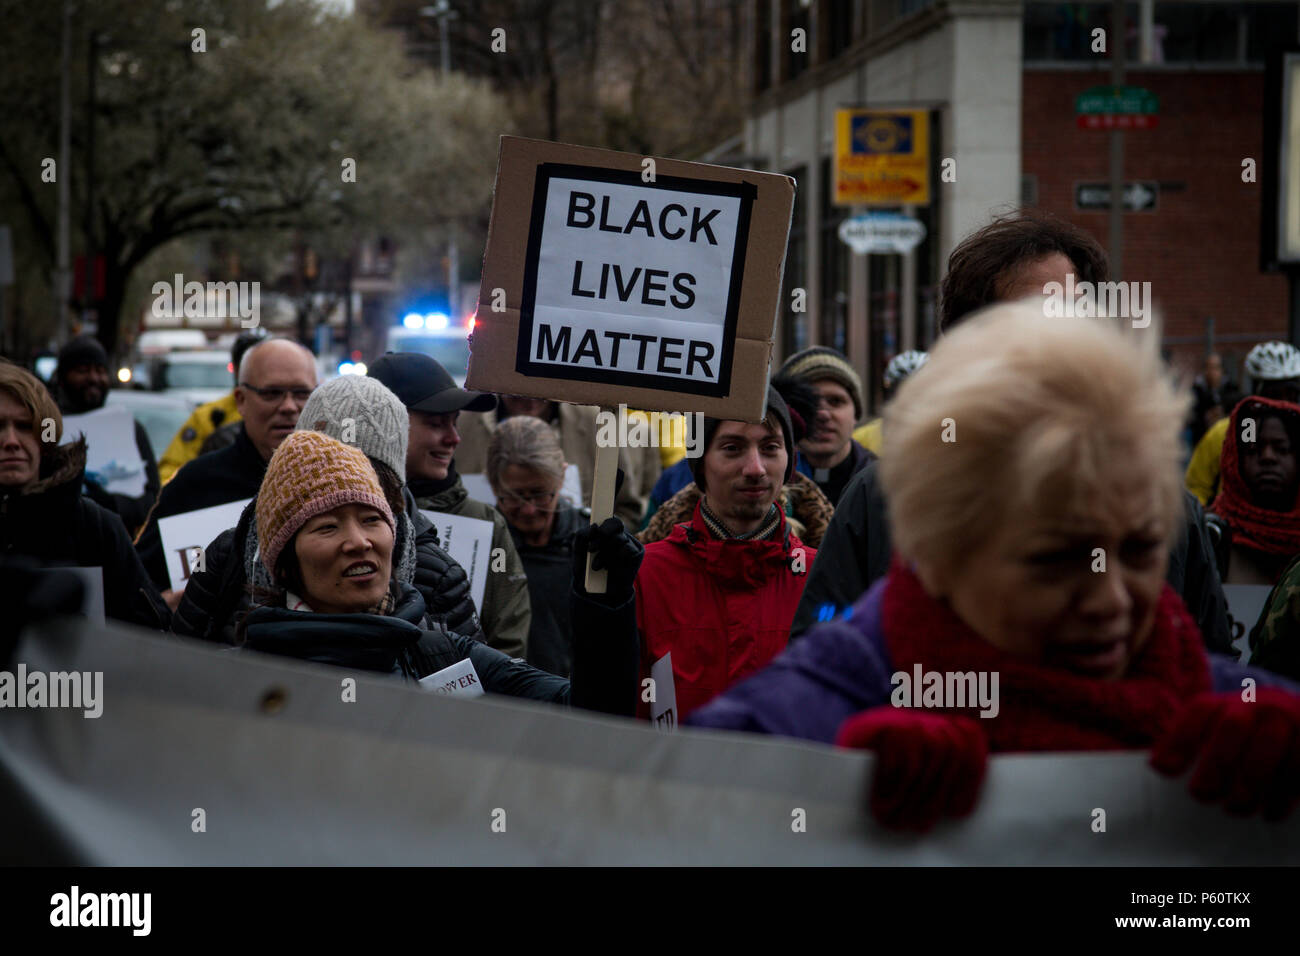 Philadelphia, USA, 19th April, 2018. After the arrest of two black men asking to use the bathroom in a Philadelphia Starbucks, interfaith groups protested the police for their use of excessive force. - Stock Image